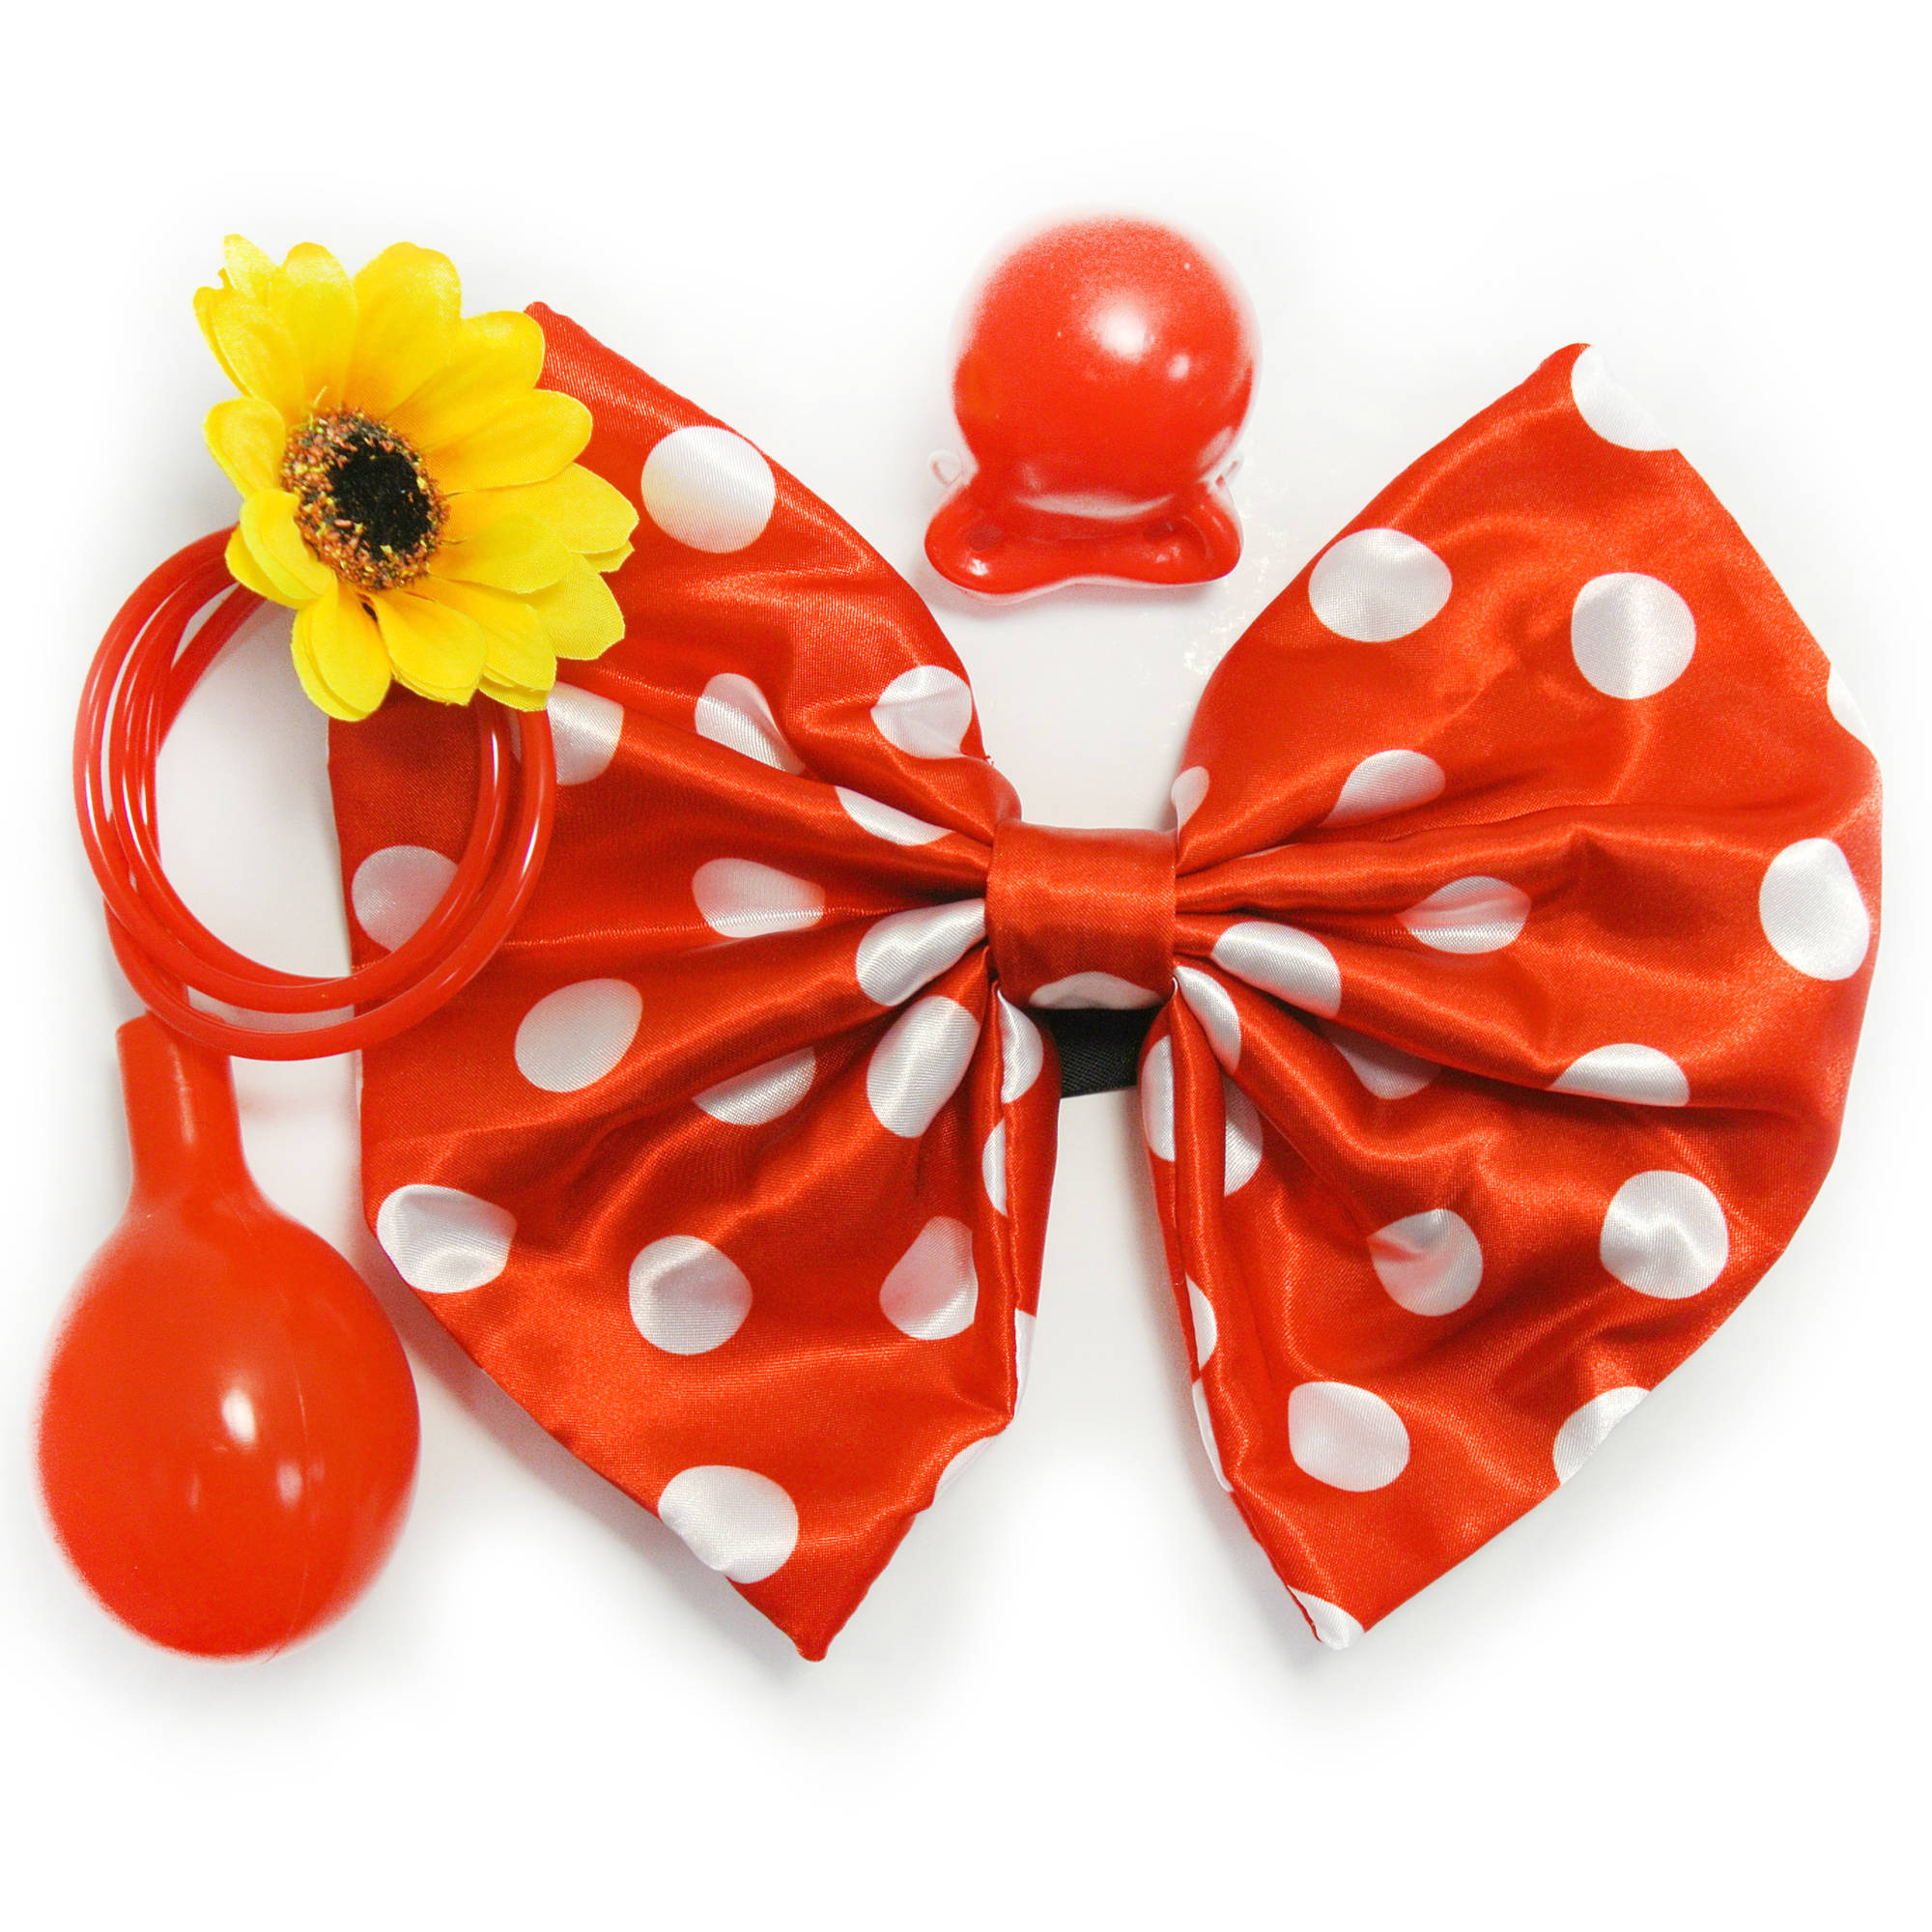 Polka Dot Clown Halloween Costume Accessory Kit